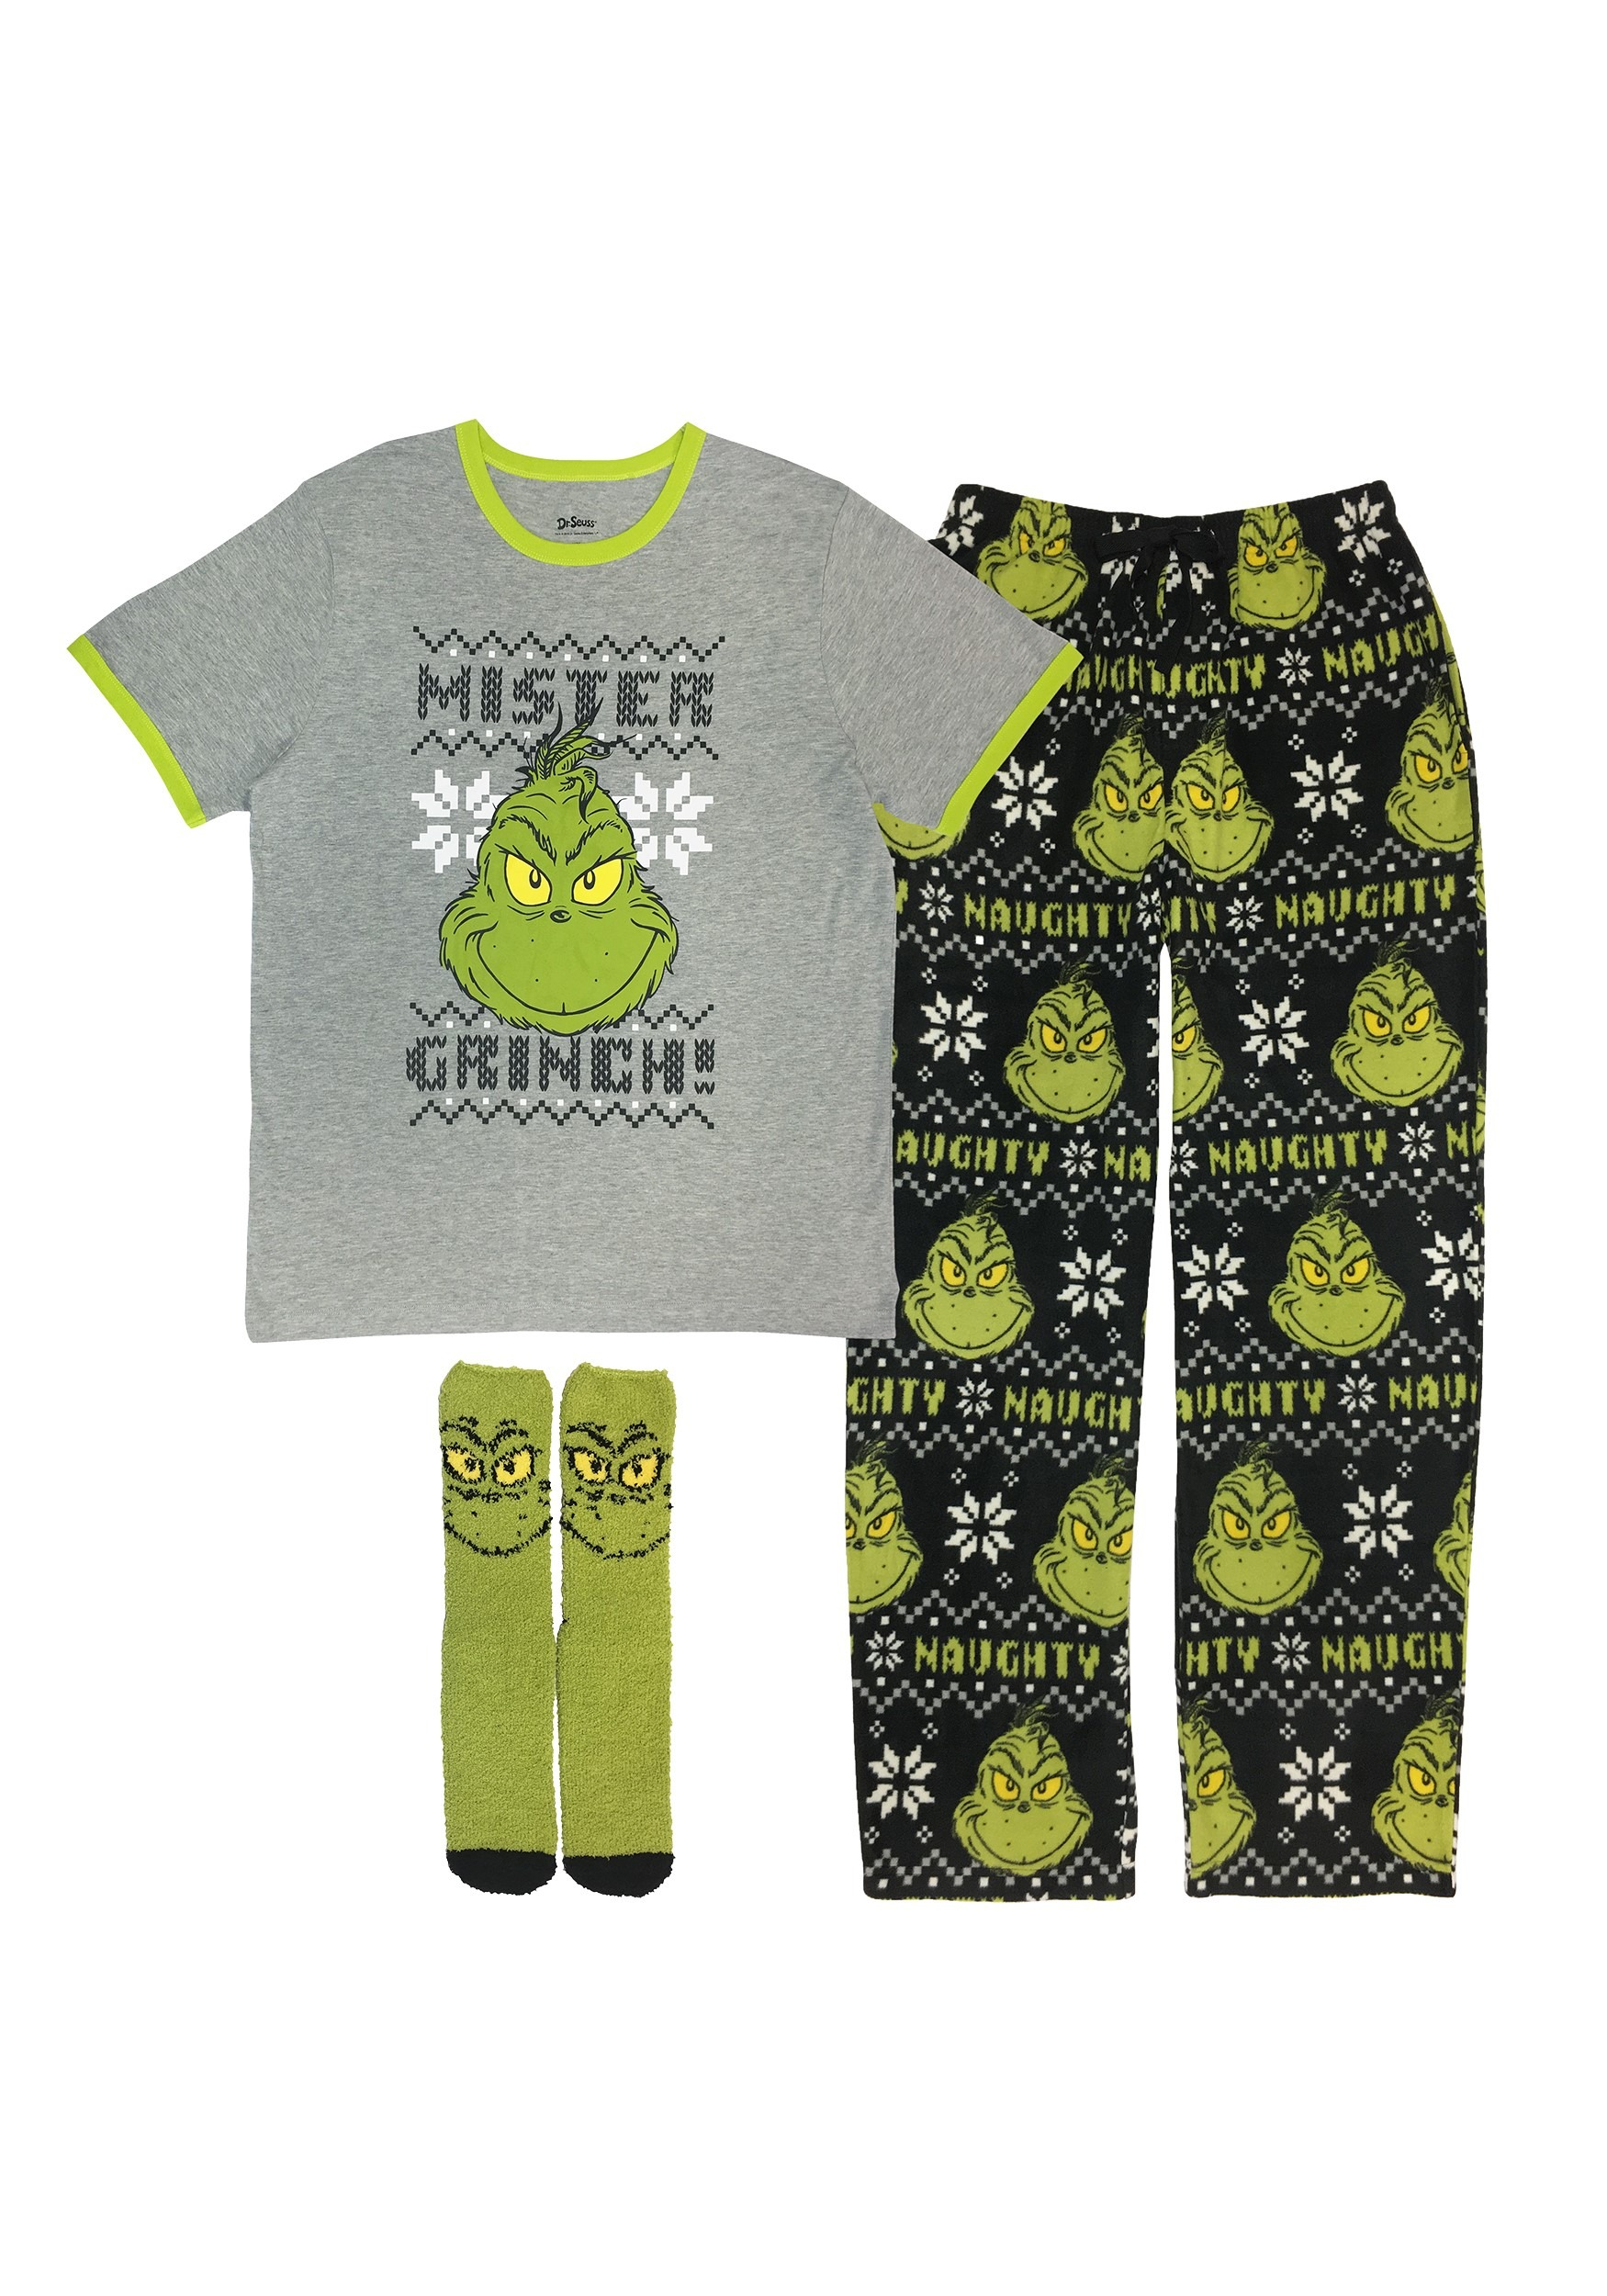 How the Grinch Stole Christmas Mister Grinch Loungewear Set for Men